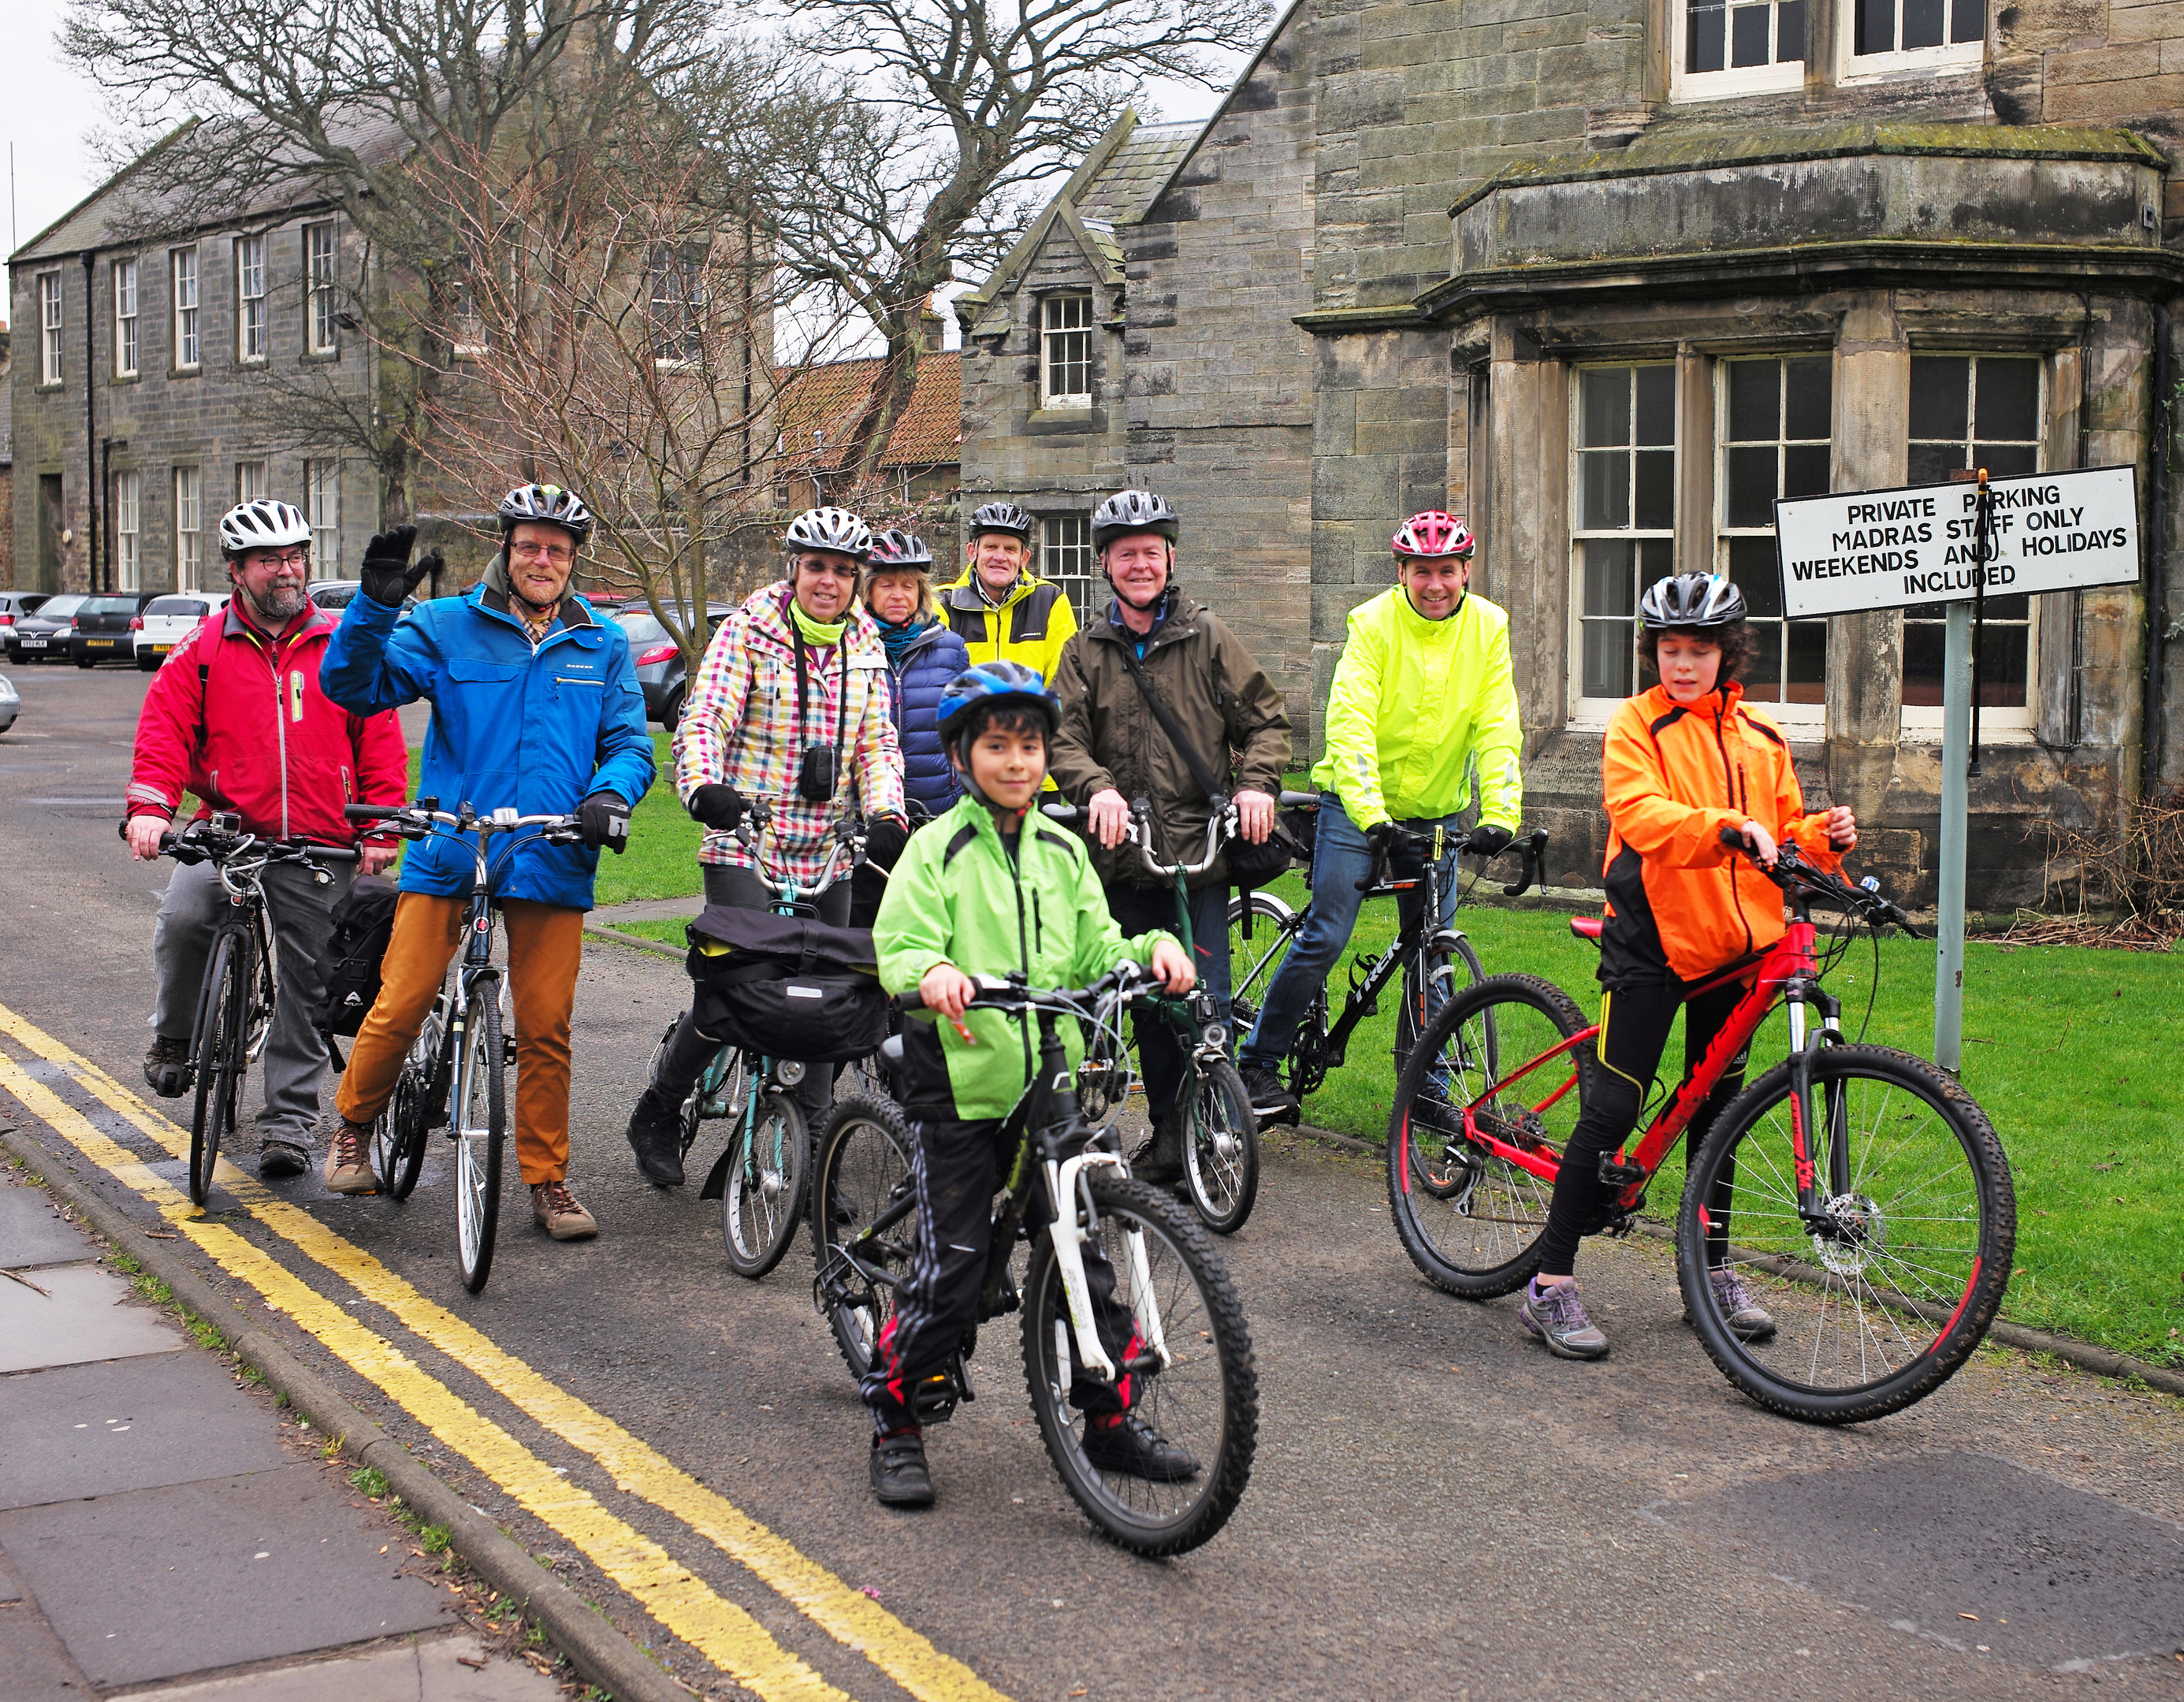 Members of the St Andrews cycling group.